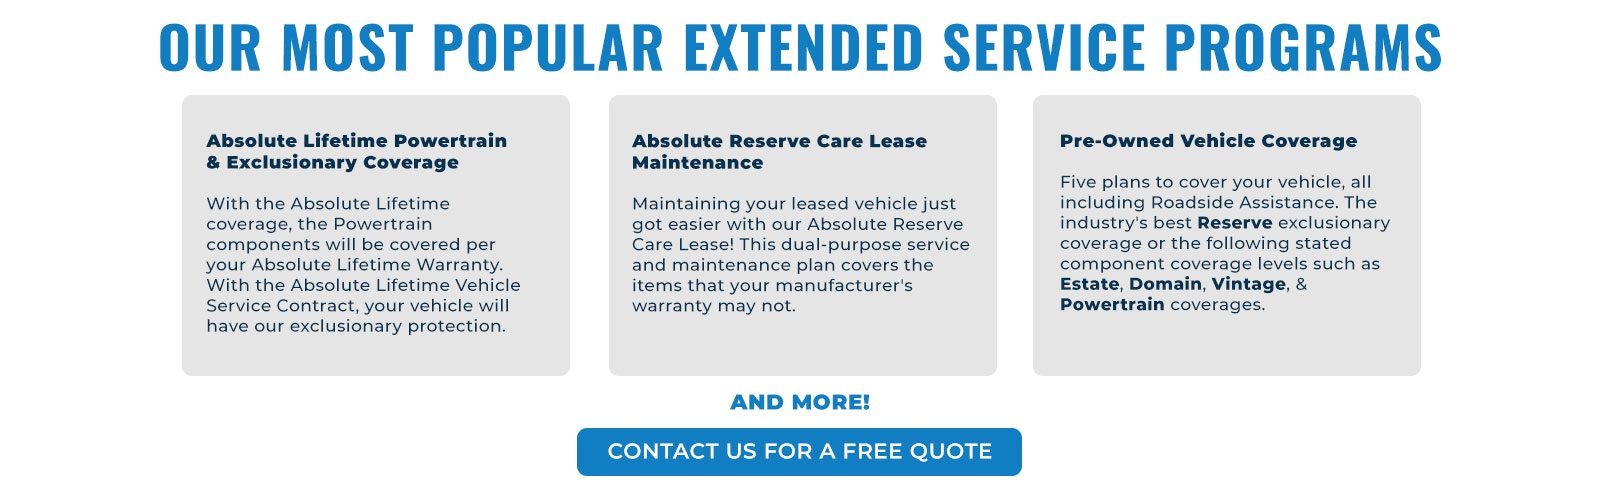 Extended Service Programs